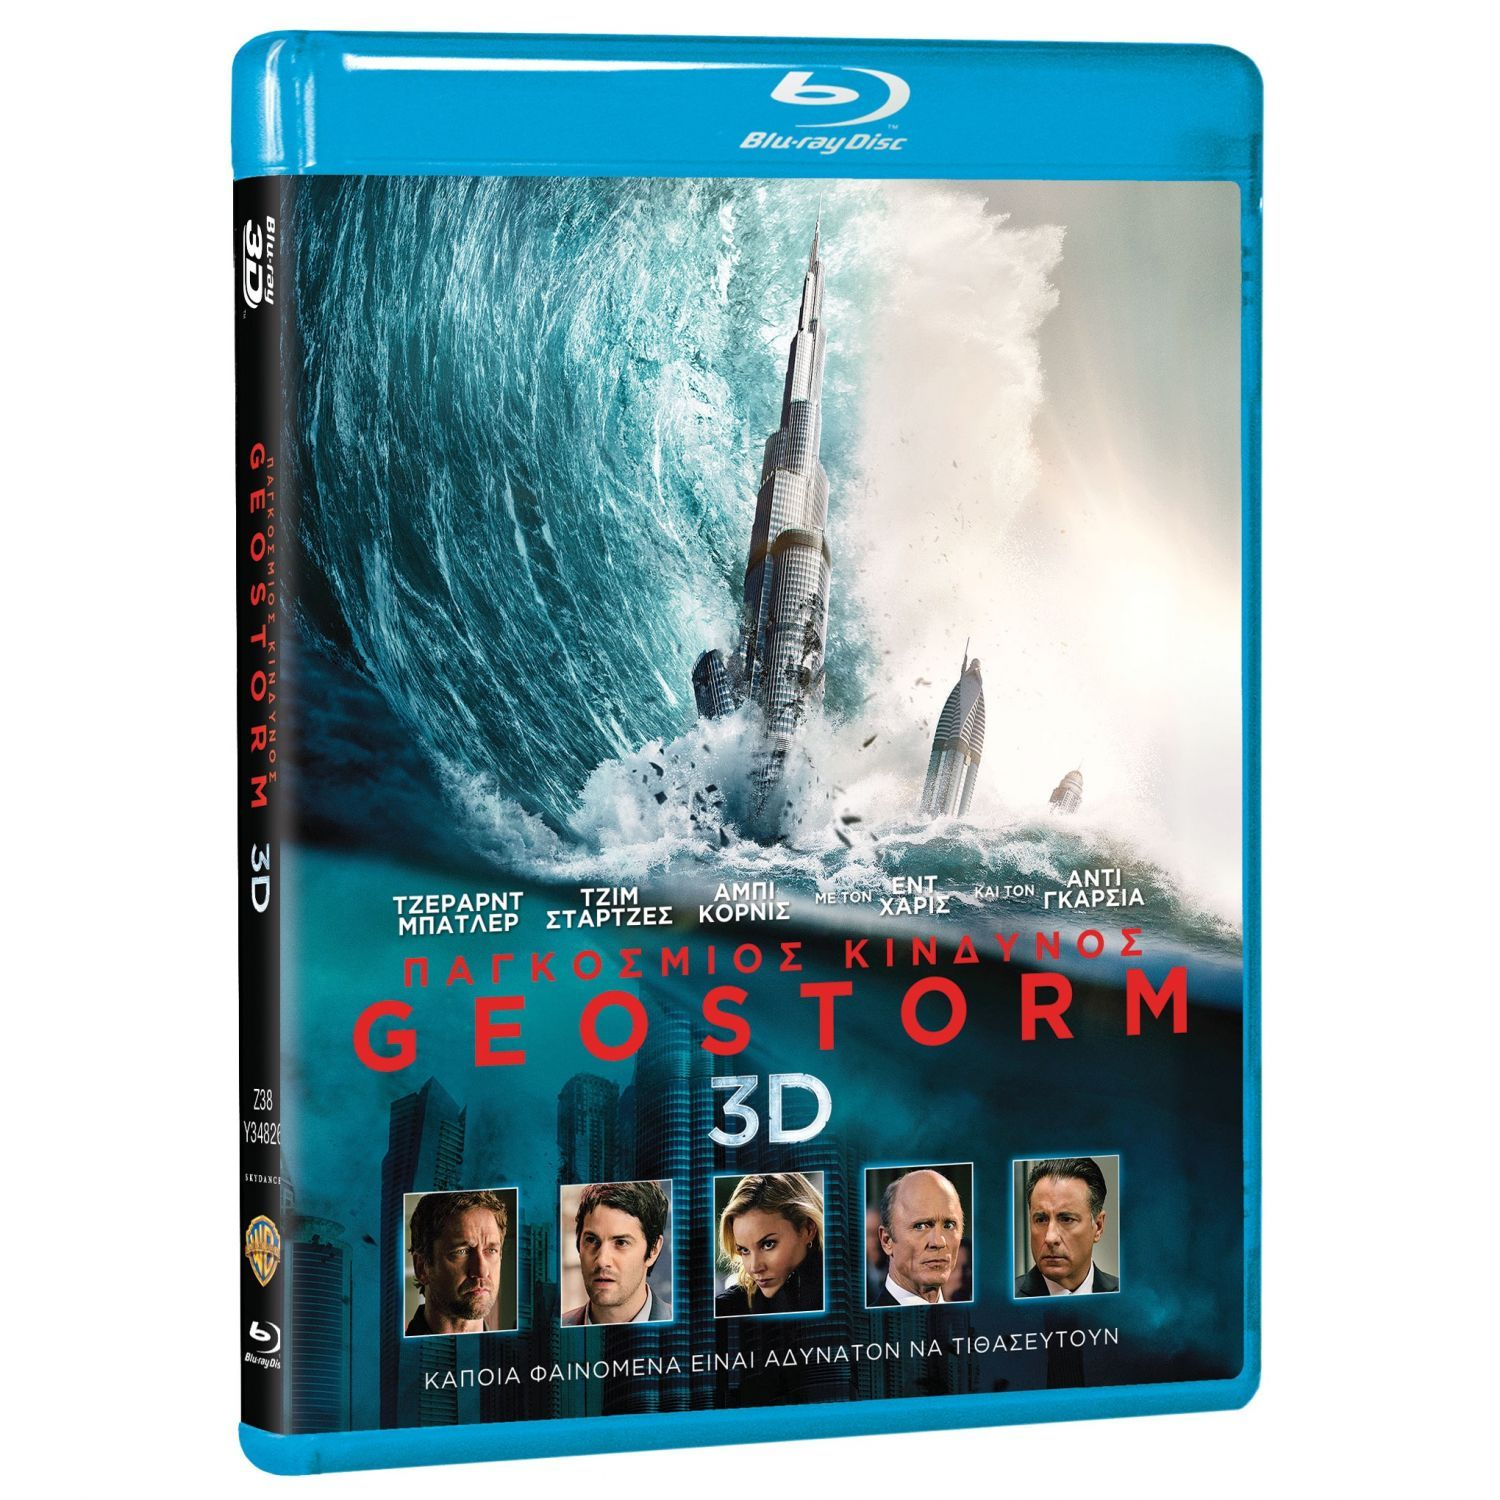 geostorm 3d 2d blu ray 3d blu ray 2d hd. Black Bedroom Furniture Sets. Home Design Ideas